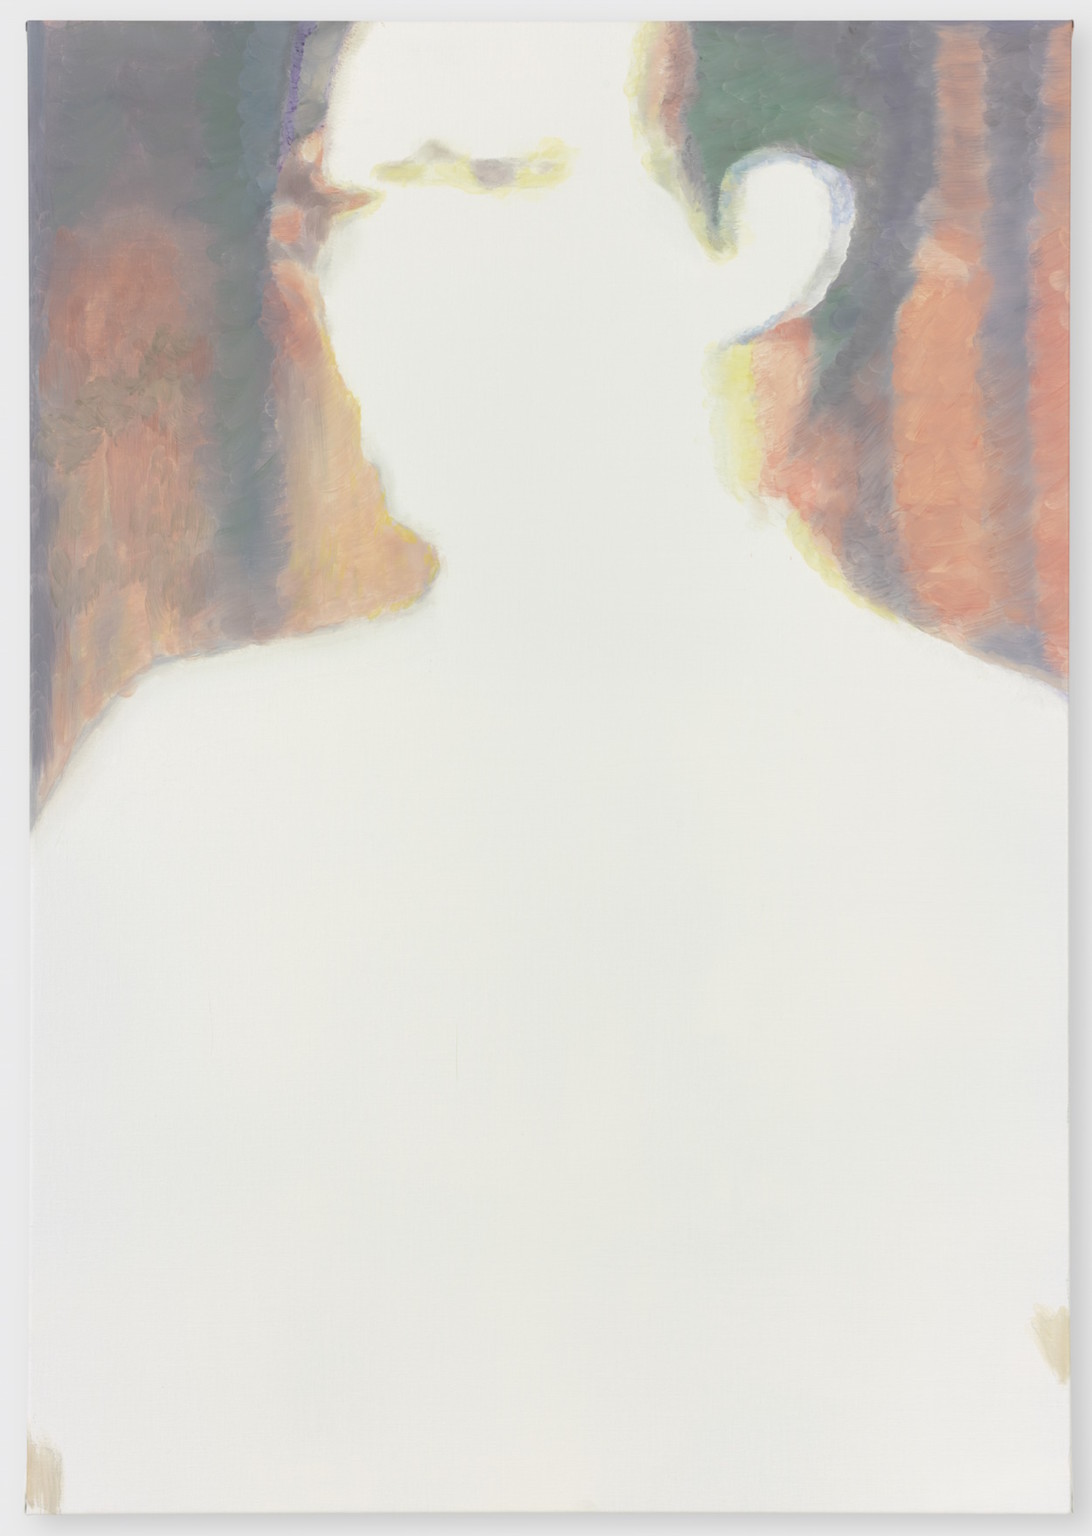 Luc Tuymans, Issei Sagawa, Oil on canvas, 2012, 116.2x81.4cm, Private collection